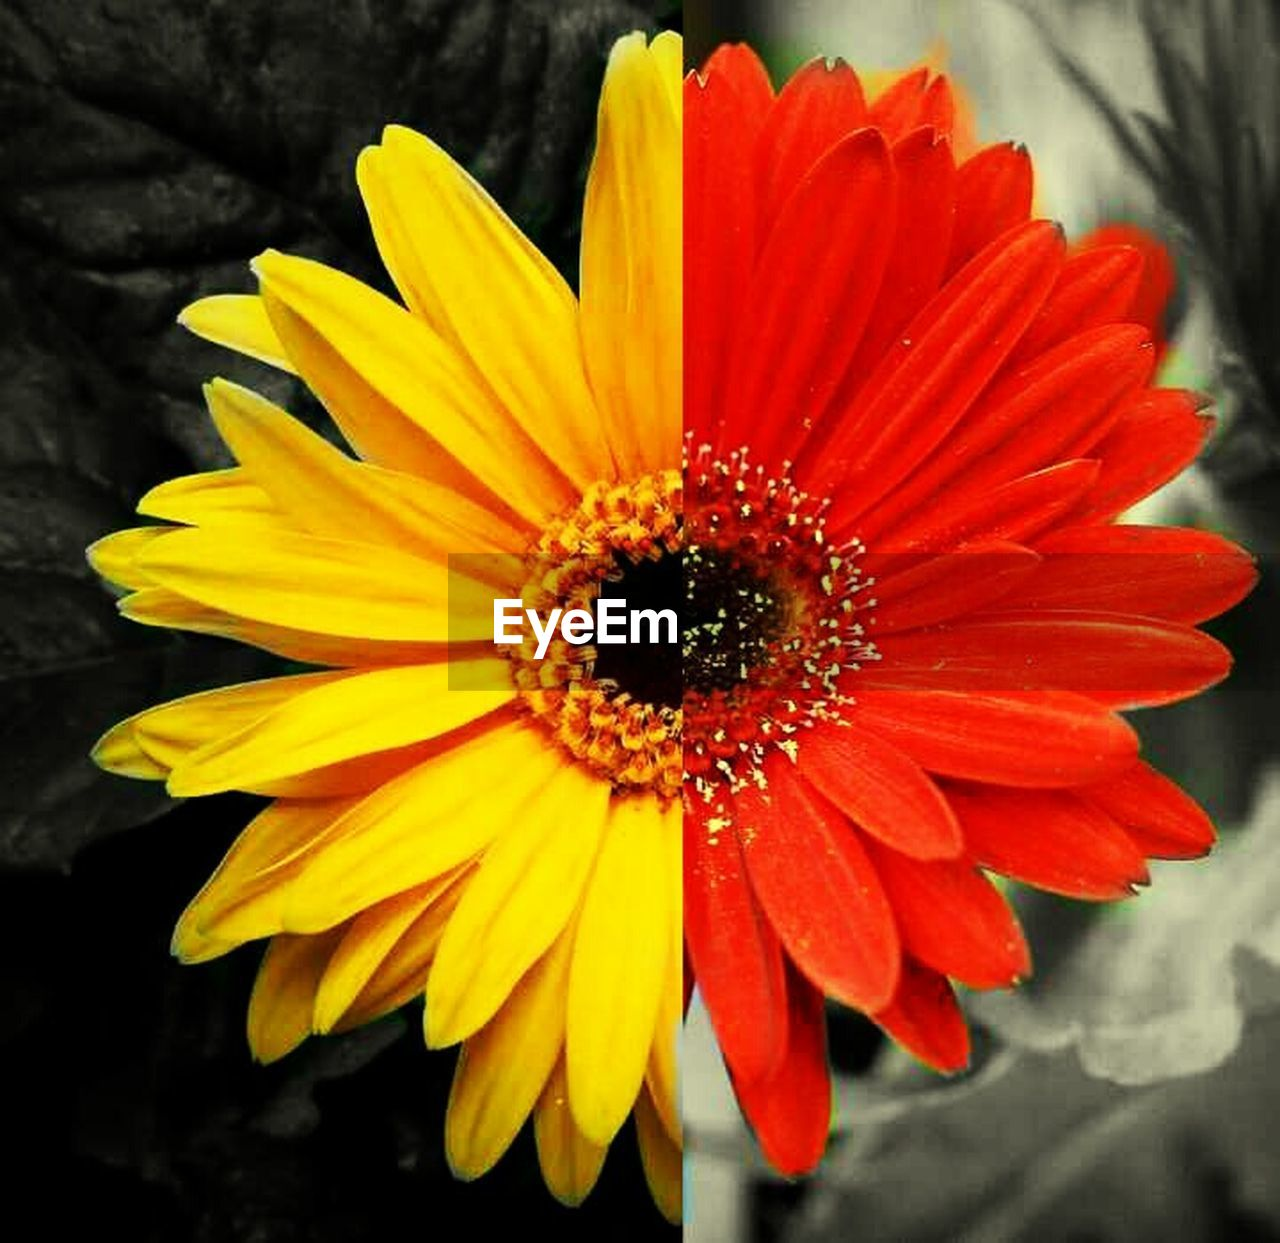 flower, petal, flower head, fragility, freshness, yellow, beauty in nature, nature, pollen, growth, blooming, no people, close-up, day, plant, gazania, outdoors, springtime